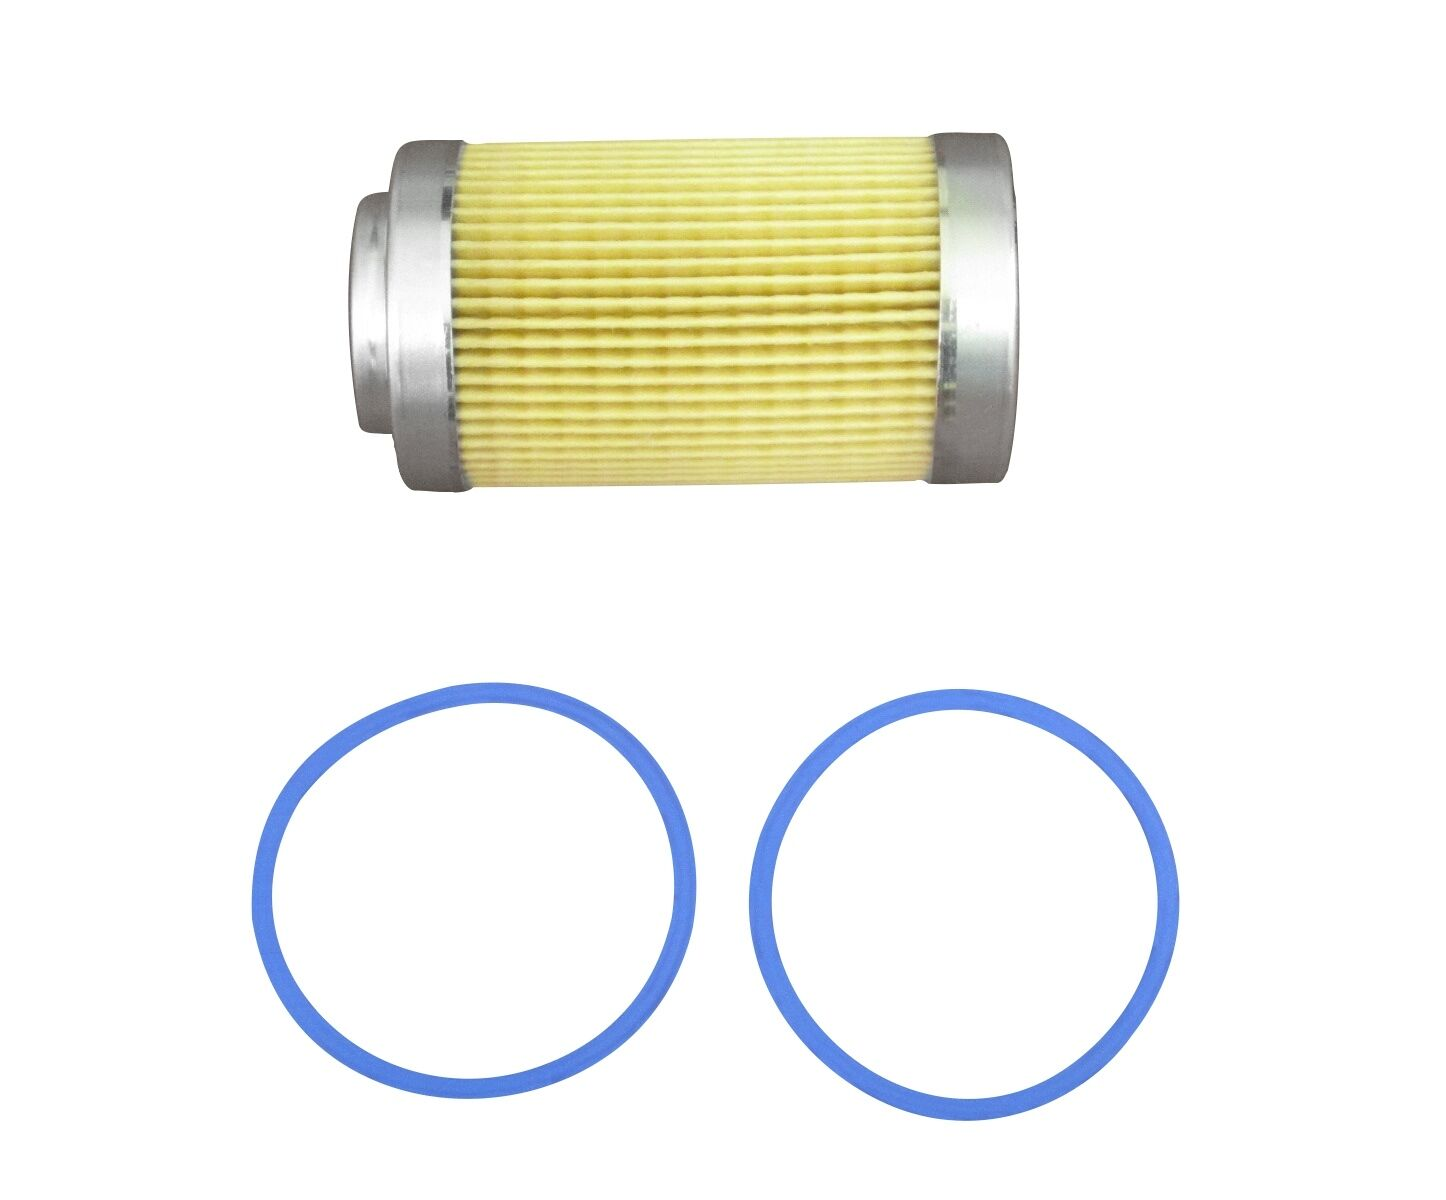 Fuelab Fuel Filter Replacement Element 10 Micron Paper 2001 Ford Mustang Competition Track 1 Of 1only 4 Available